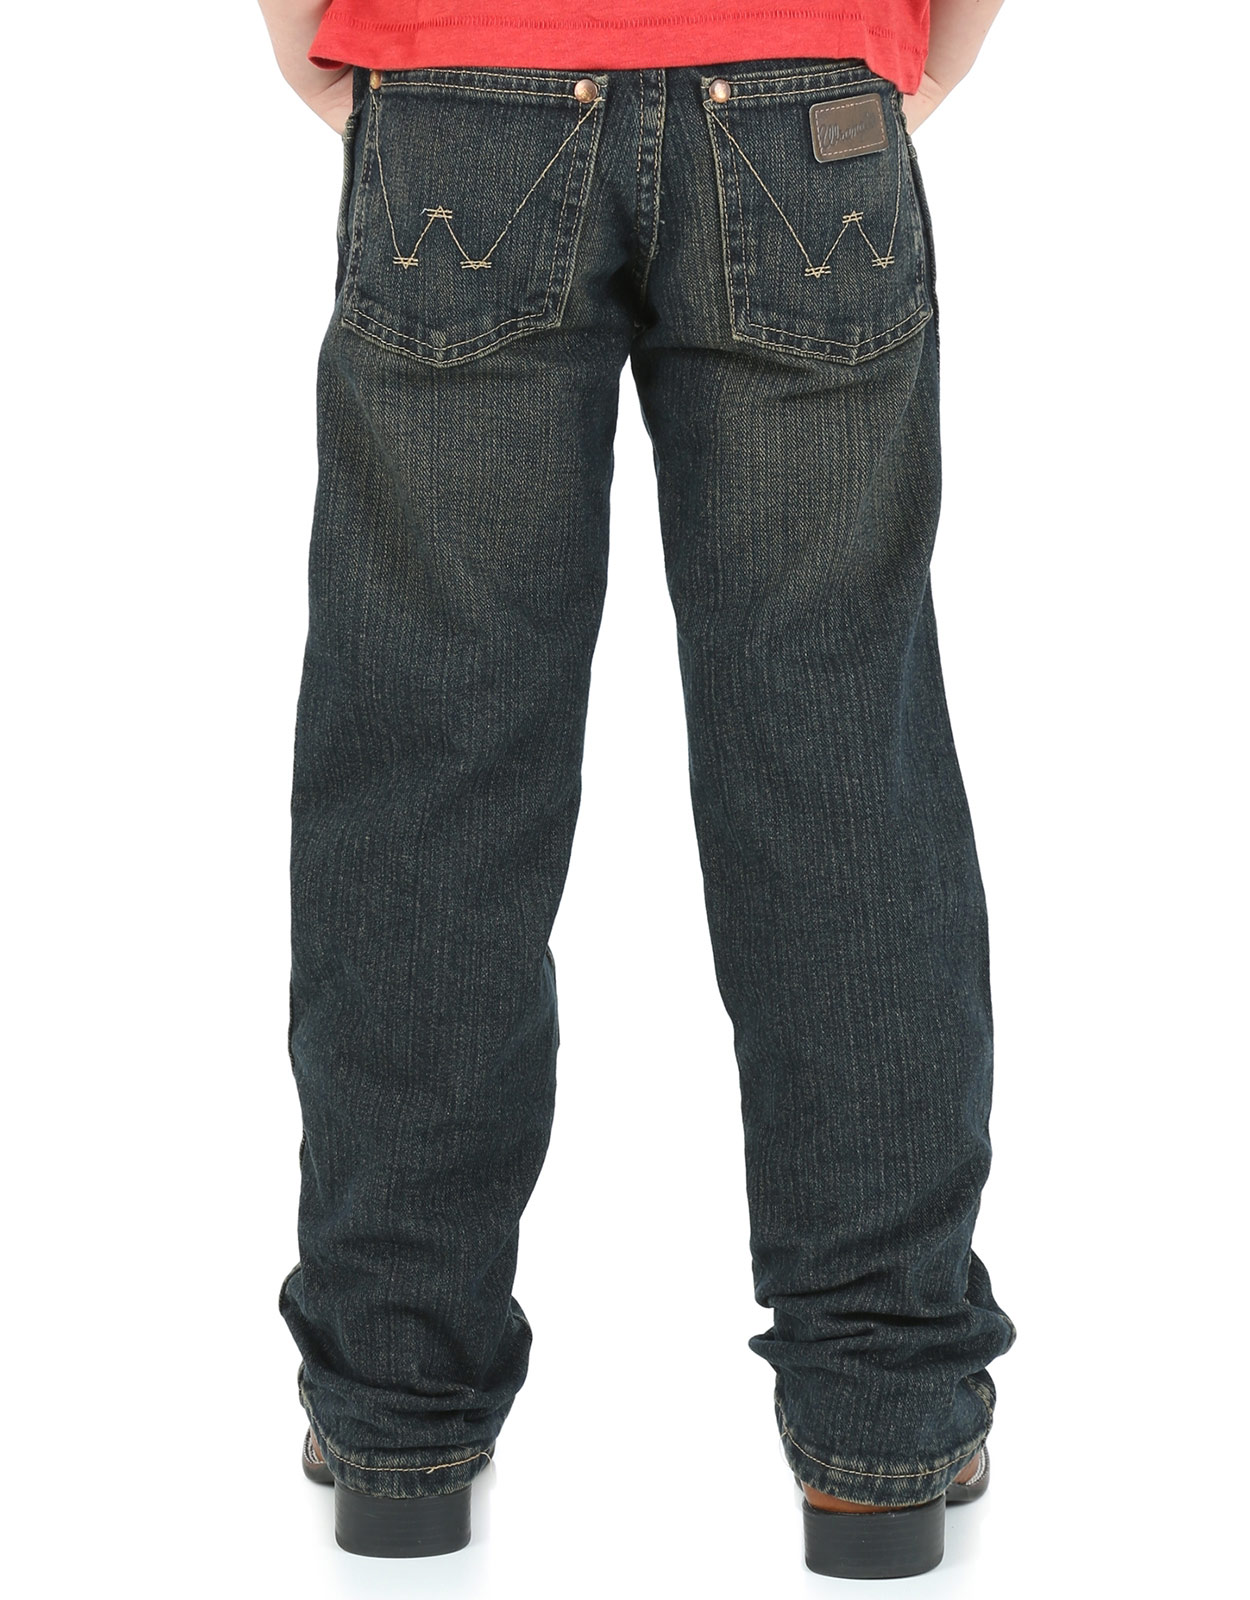 Wrangler Boy's Retro Low Rise Relaxed Fit Straight Leg Jeans (Sizes 8-20) - Rolling River